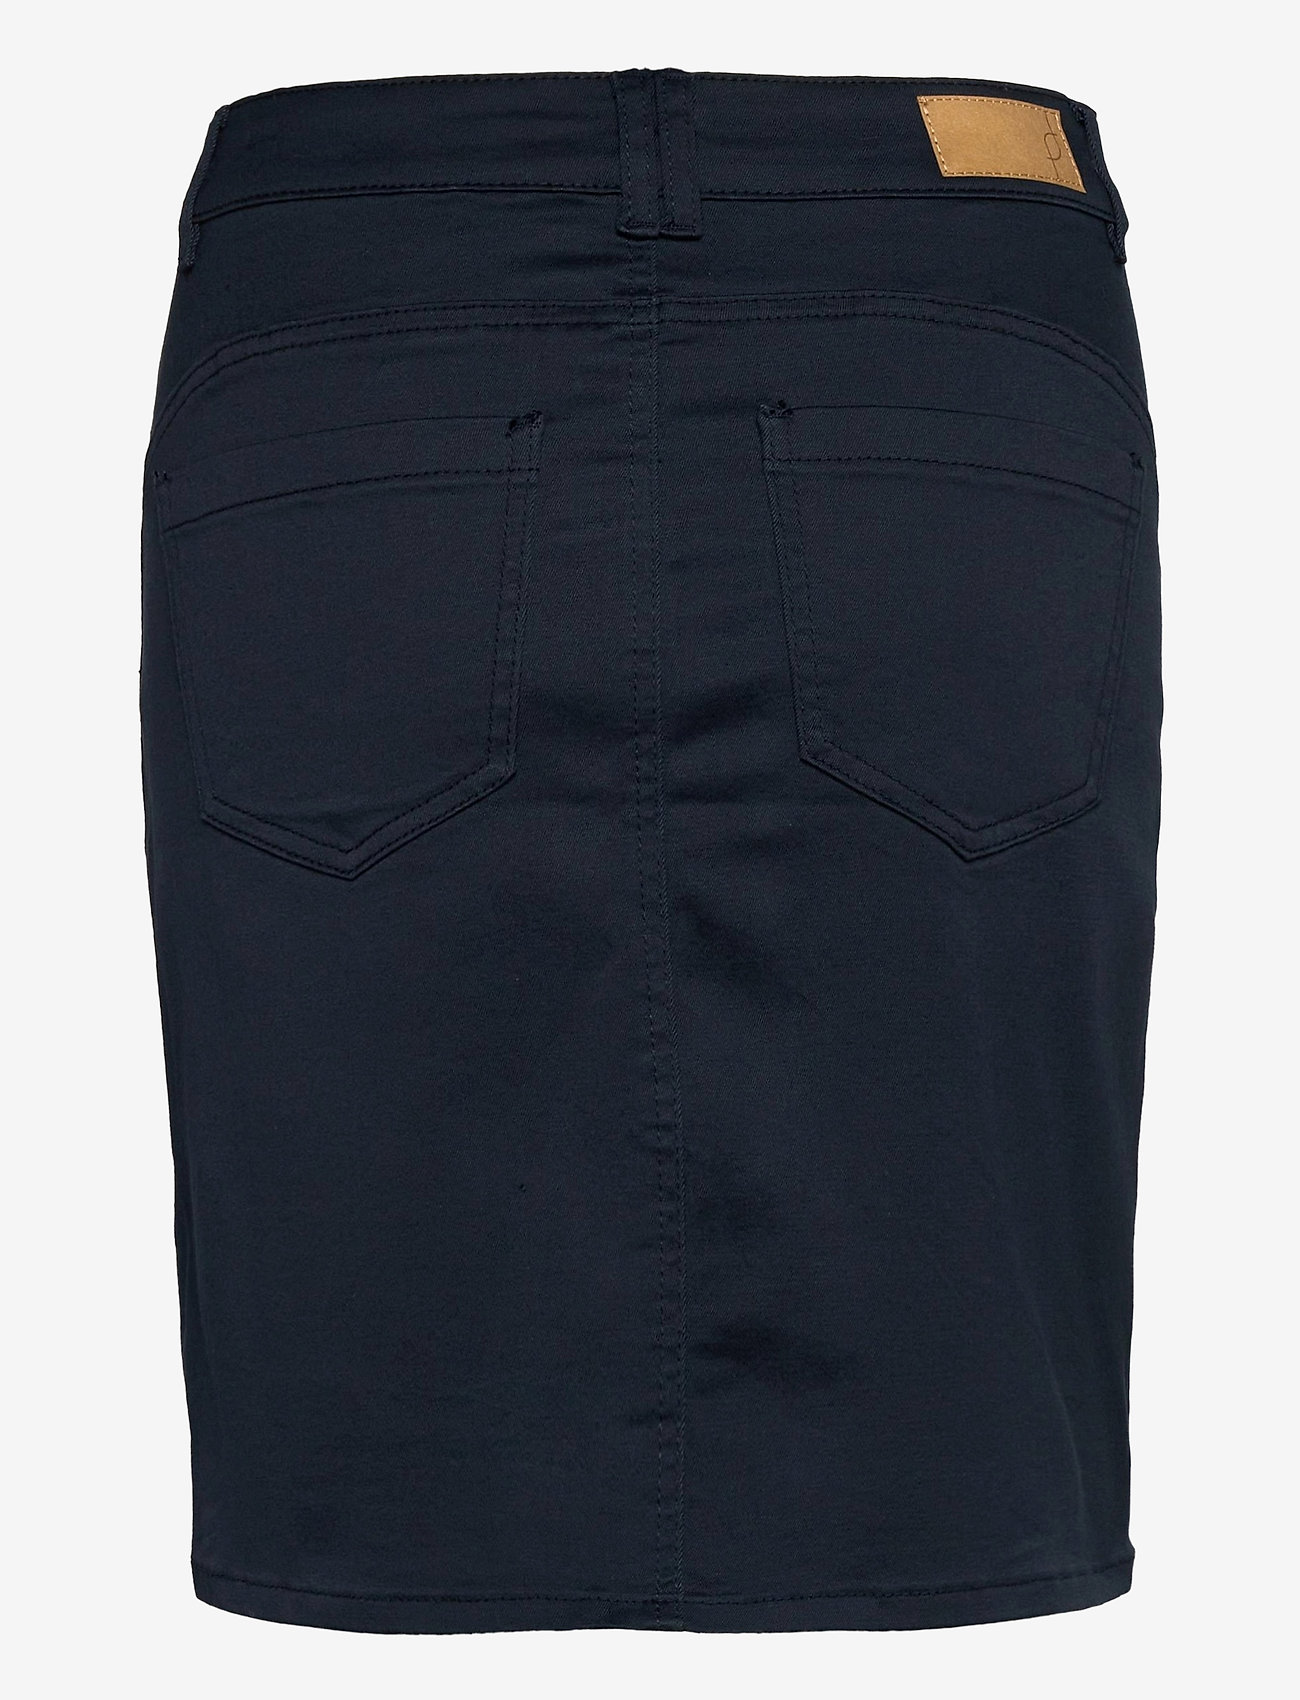 Fransa - FRLOMAX 3 Skirt - short skirts - dark peacoat - 1